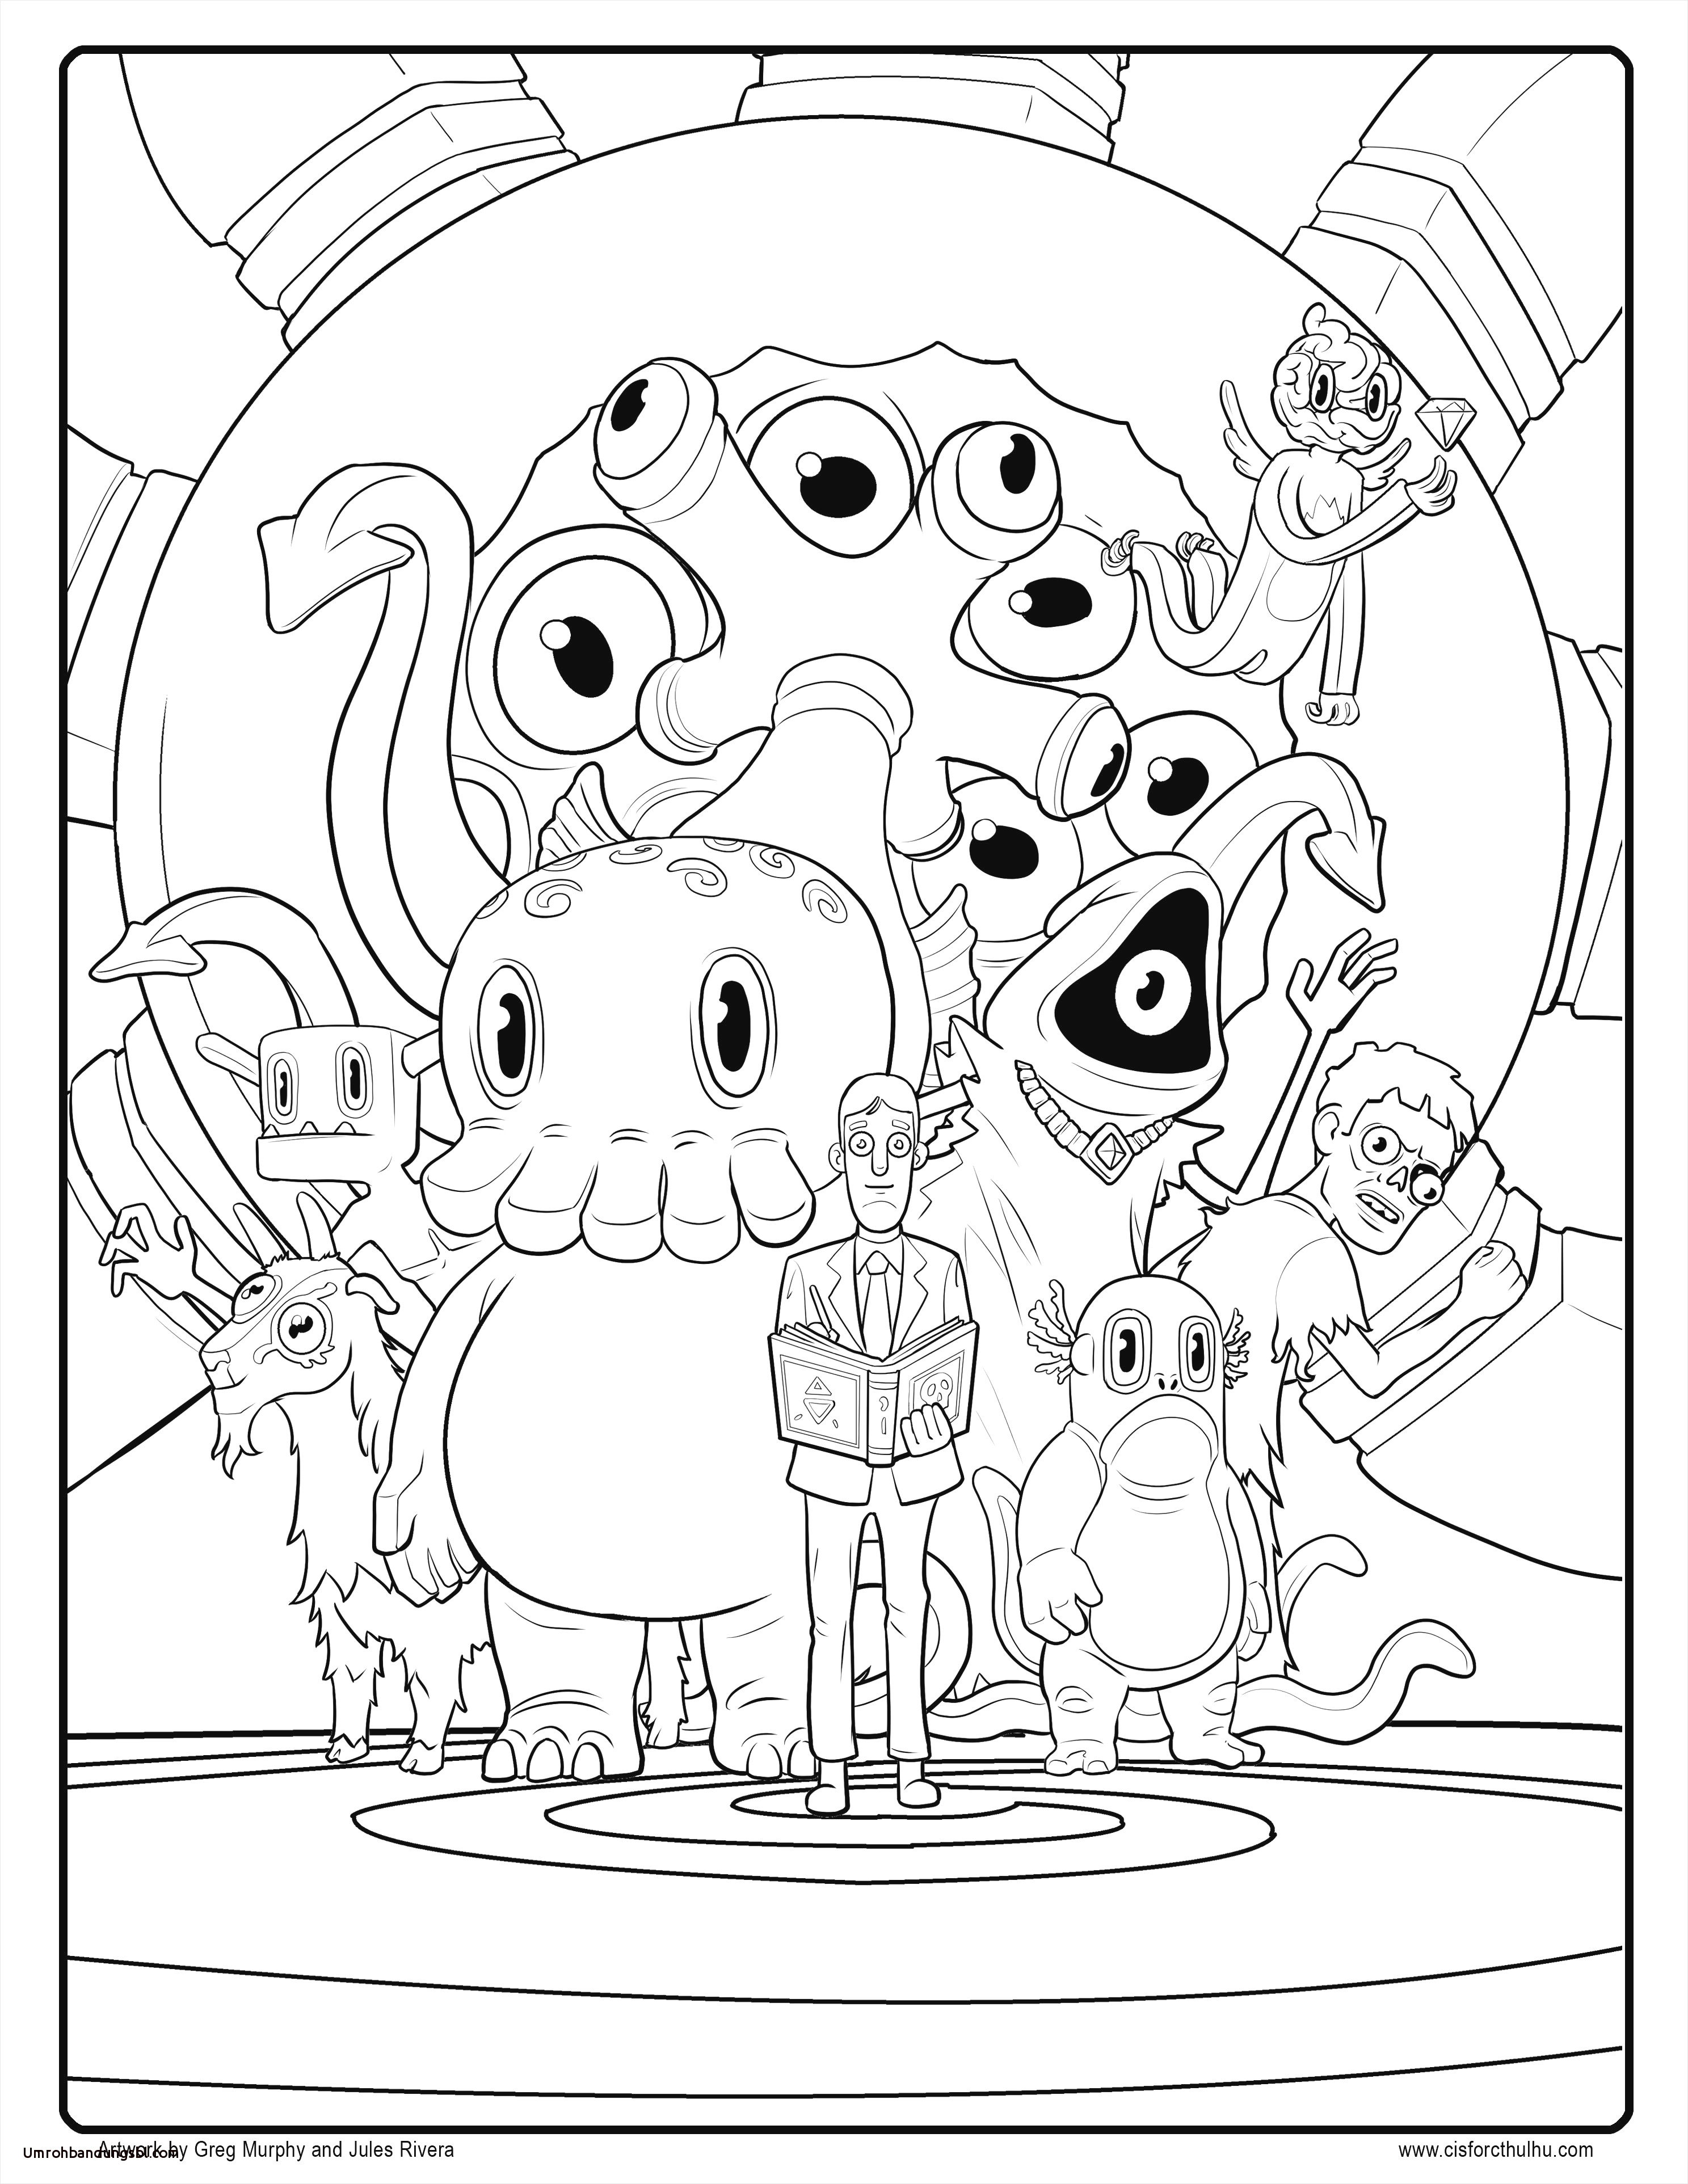 28 Shopkins Coloring Pages Download Coloring Sheets